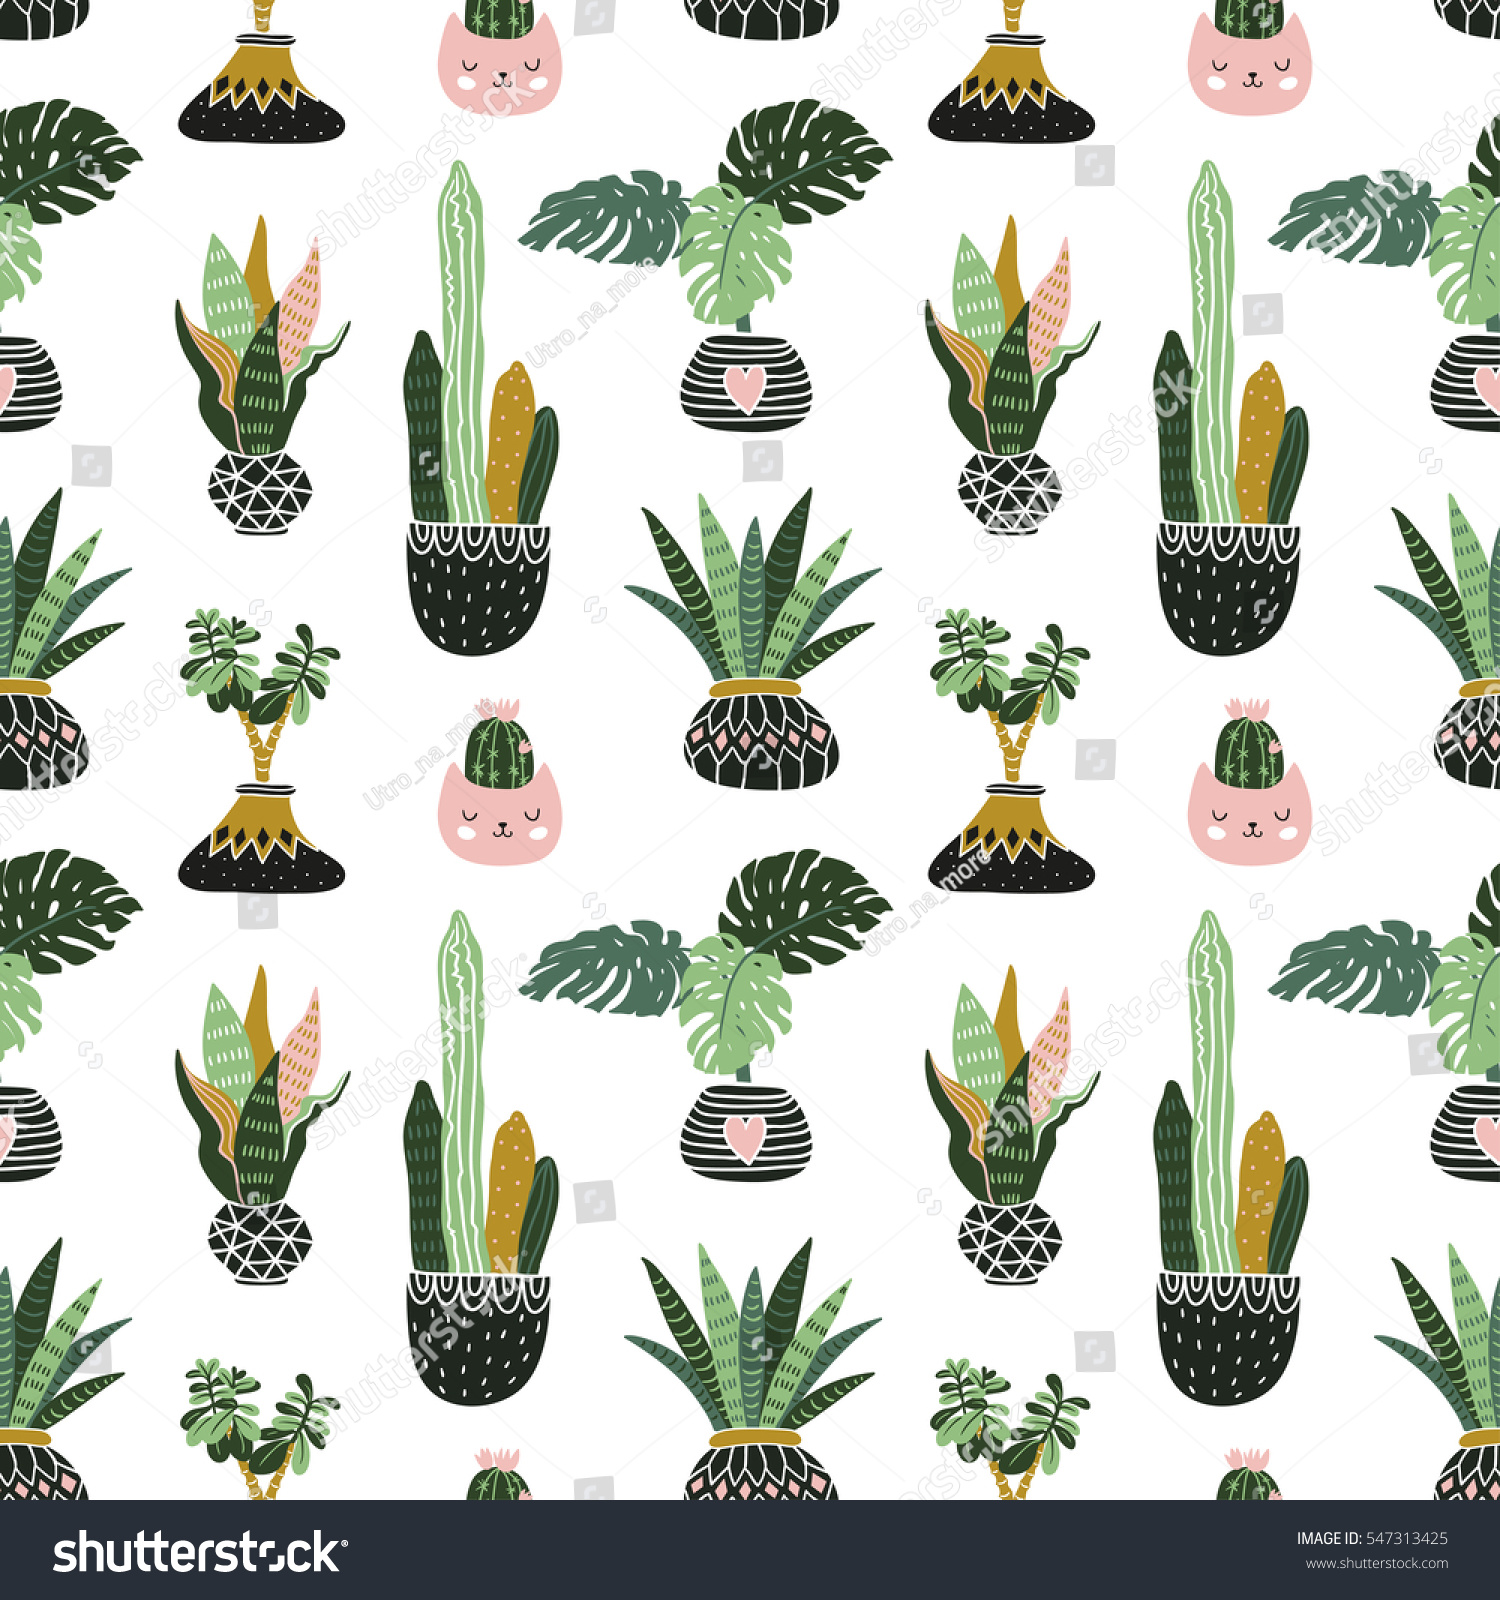 hand drawn tropical house plants style seamless pattern for fabric wallpaper